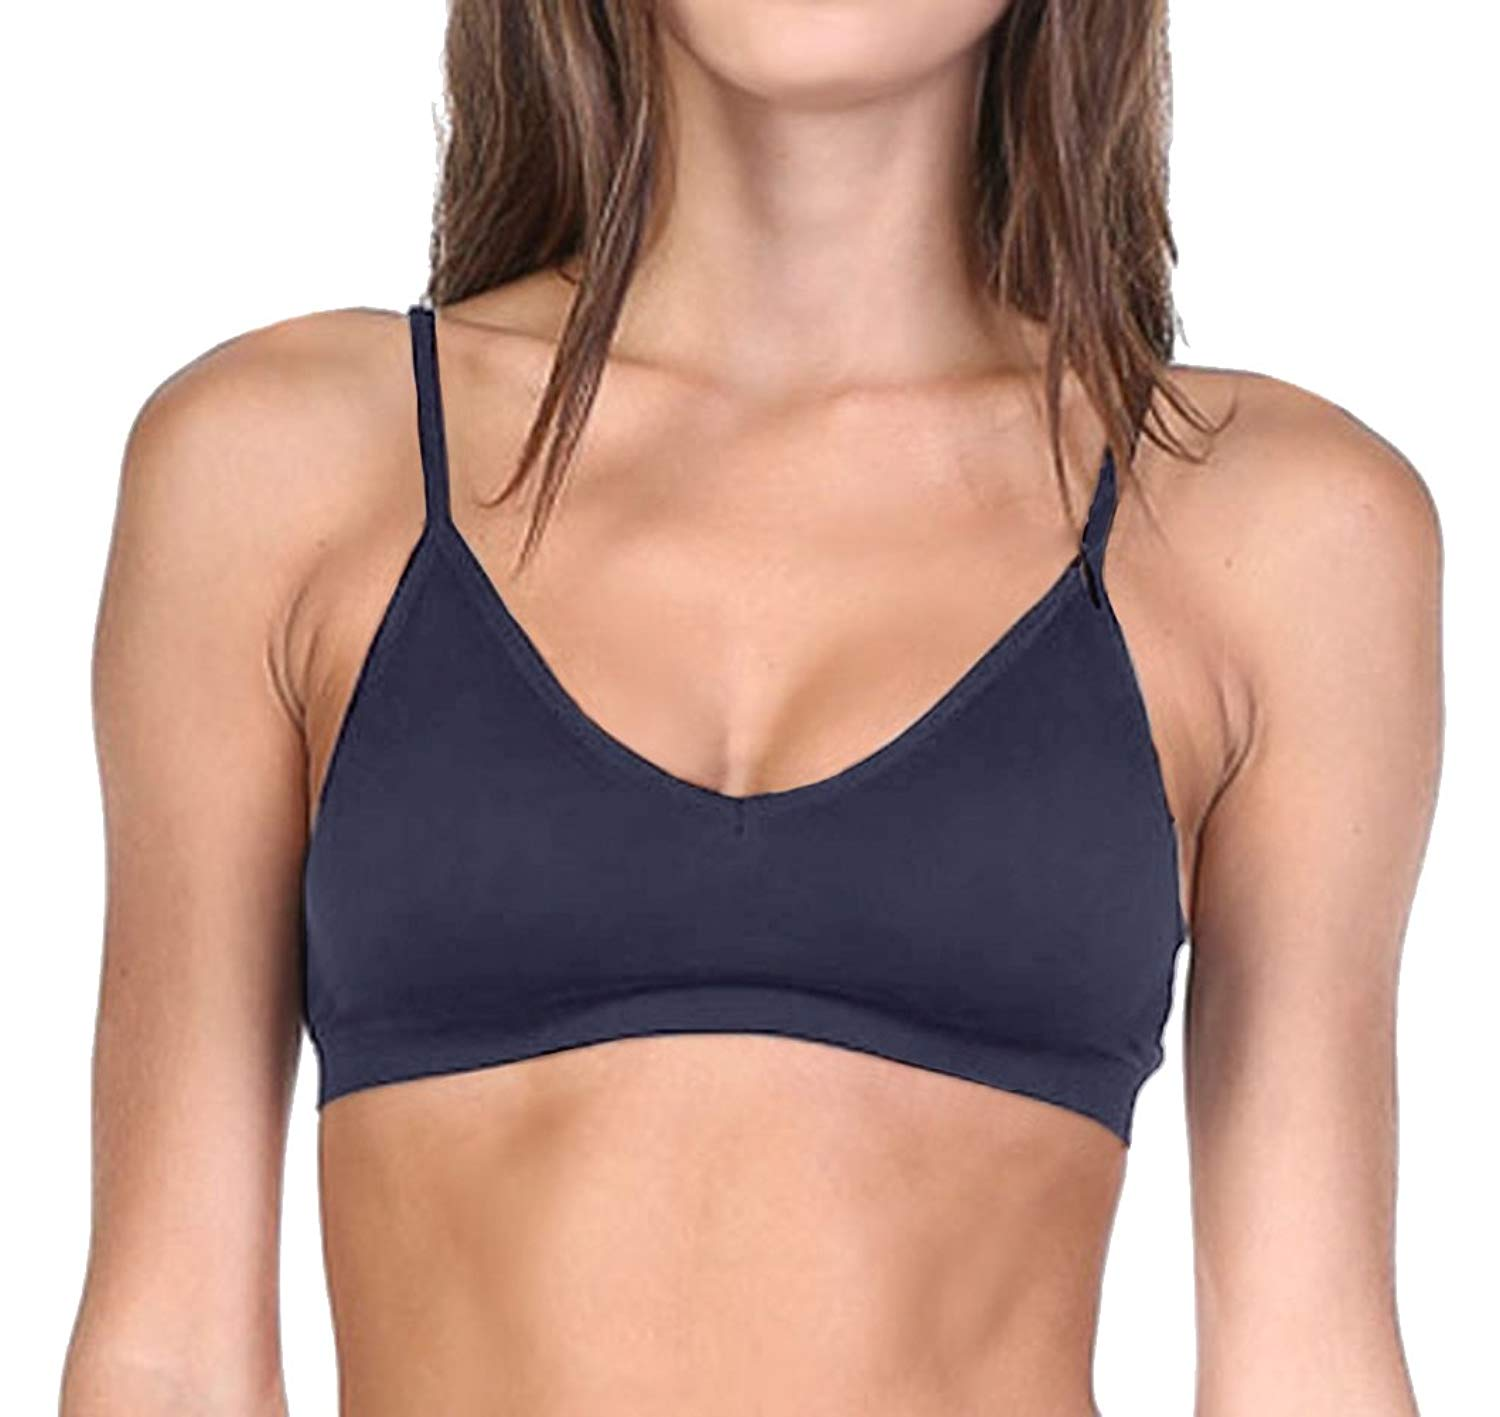 492549a518191 Get Quotations · Belle Donne Sports Bra Seamless Padded Bra Fits 36A 36B -  Adjustable Straps